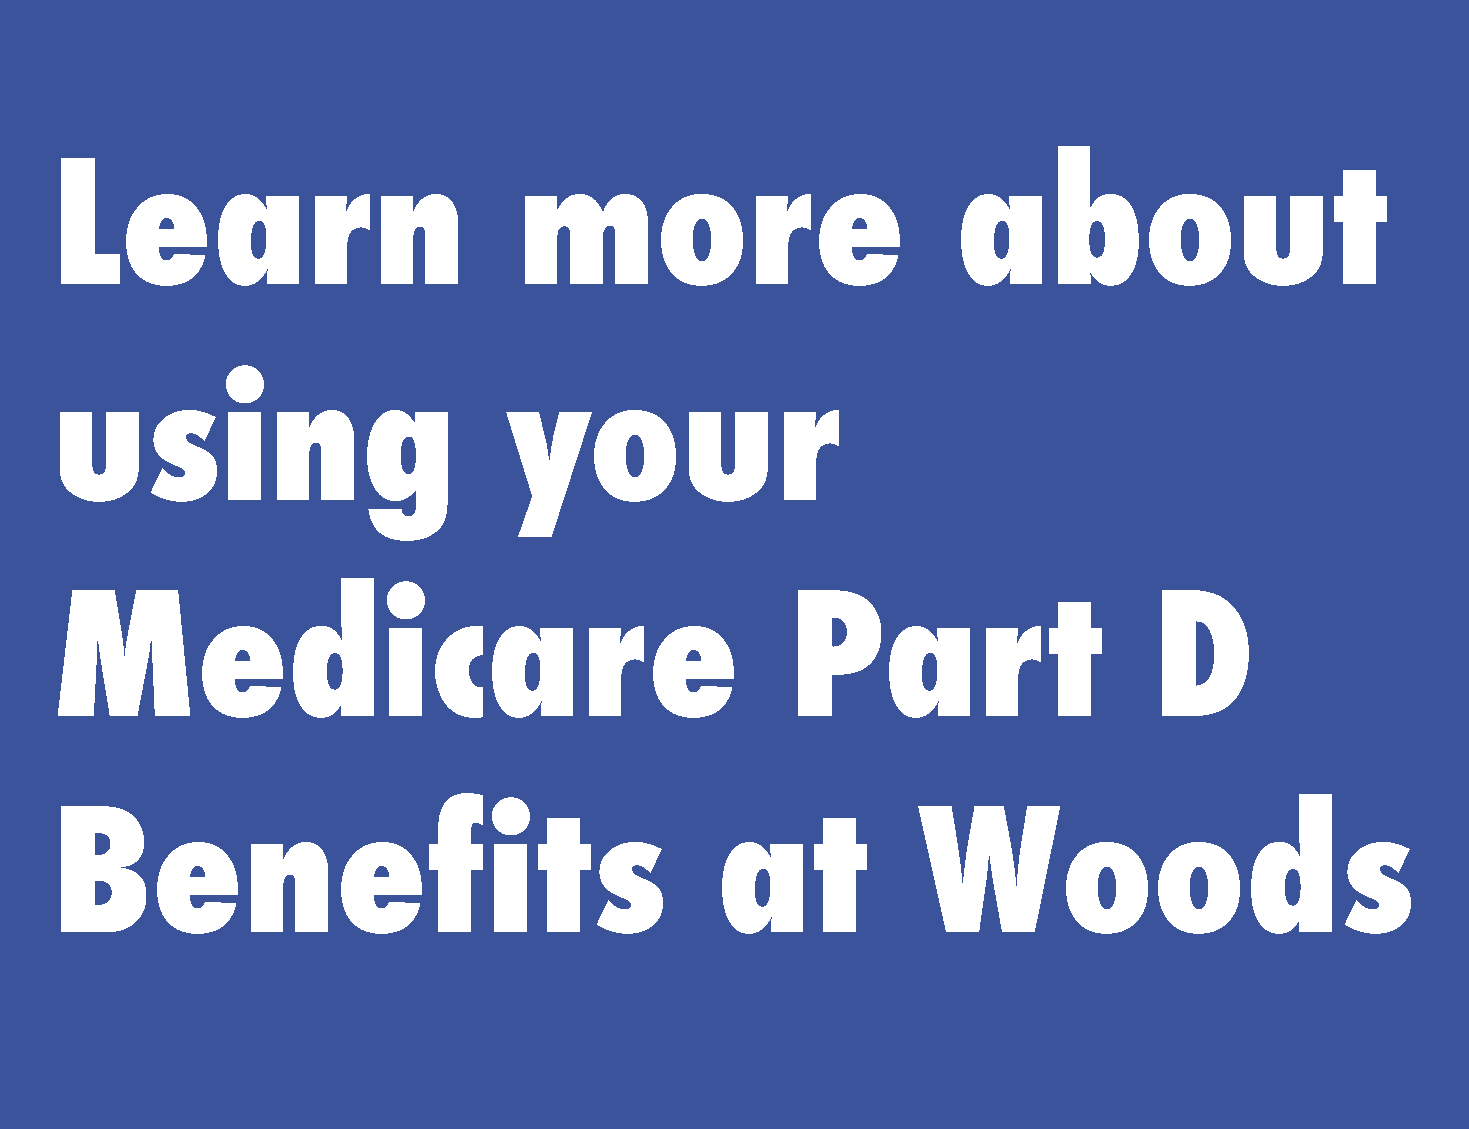 Learn more about using your Medicare Part D Benefits at Woods